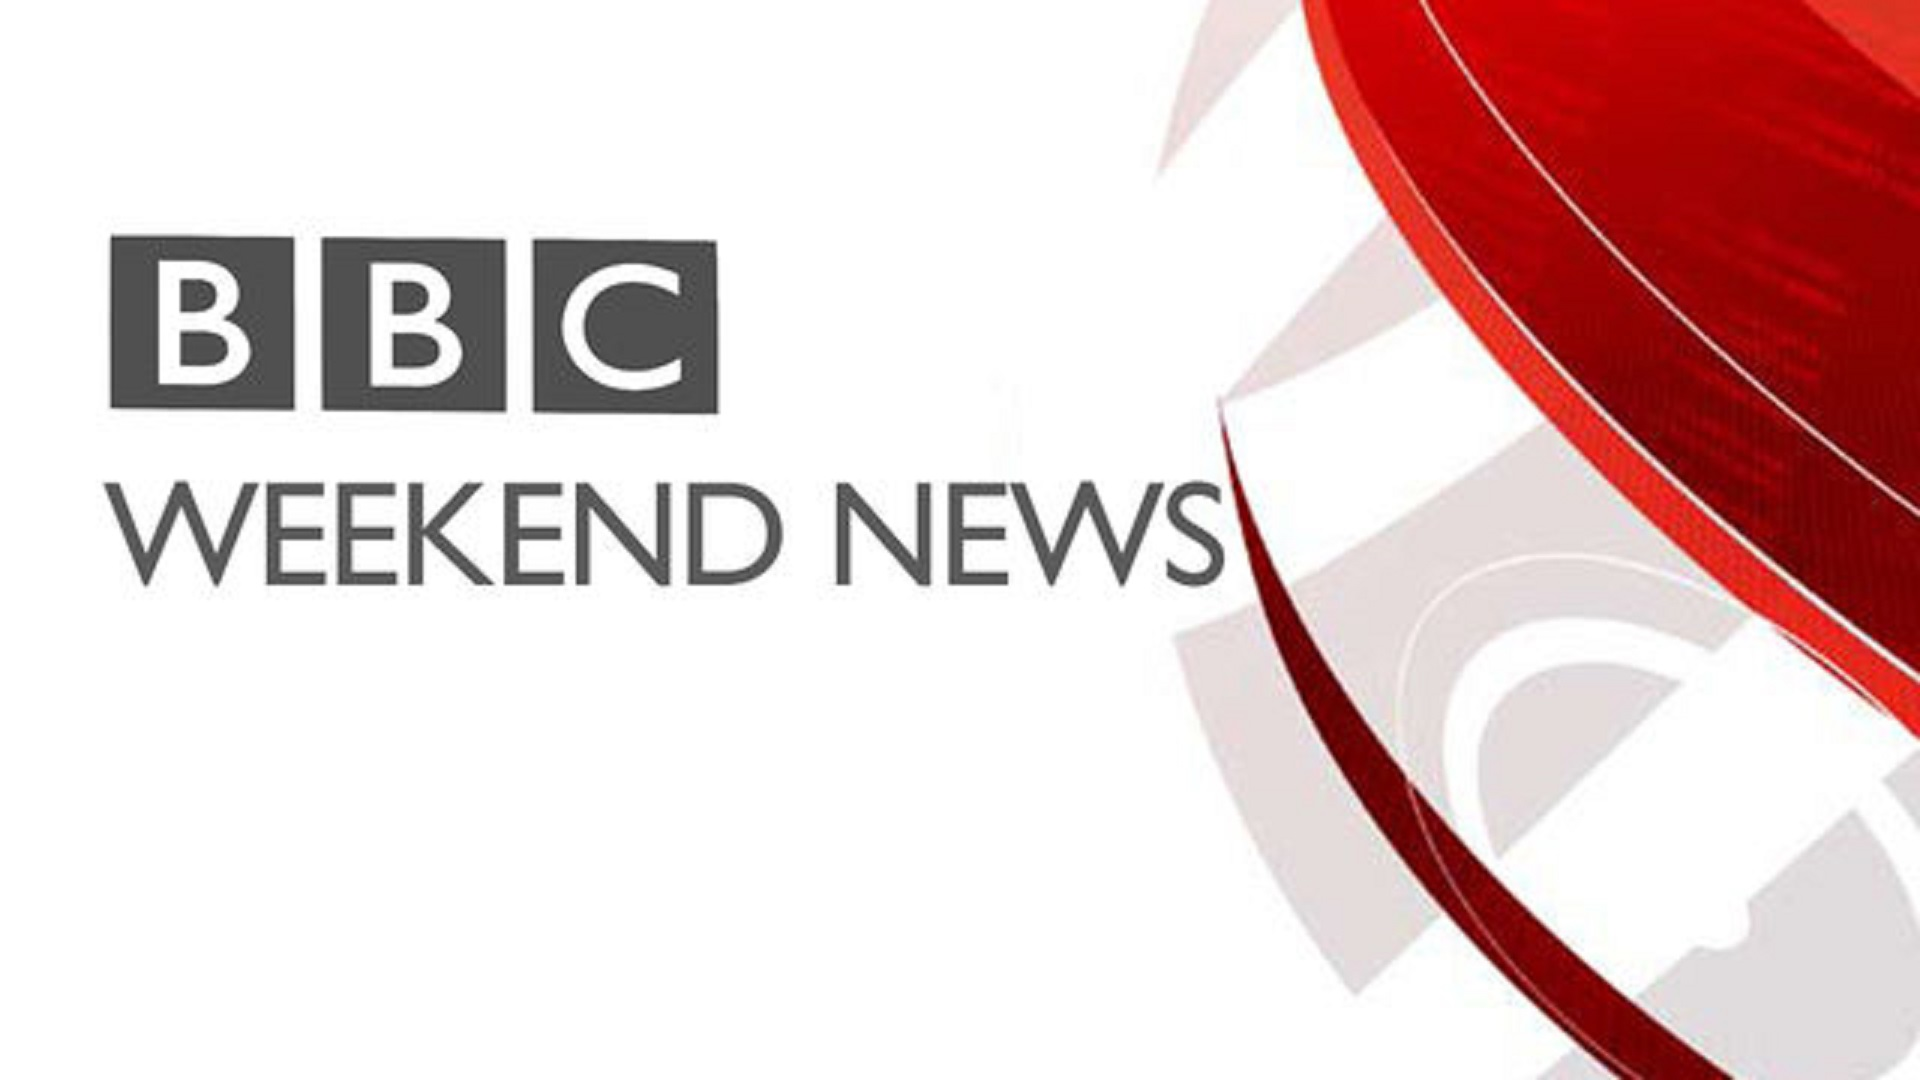 BBC Weekend News (TV Series 1954 - Now)